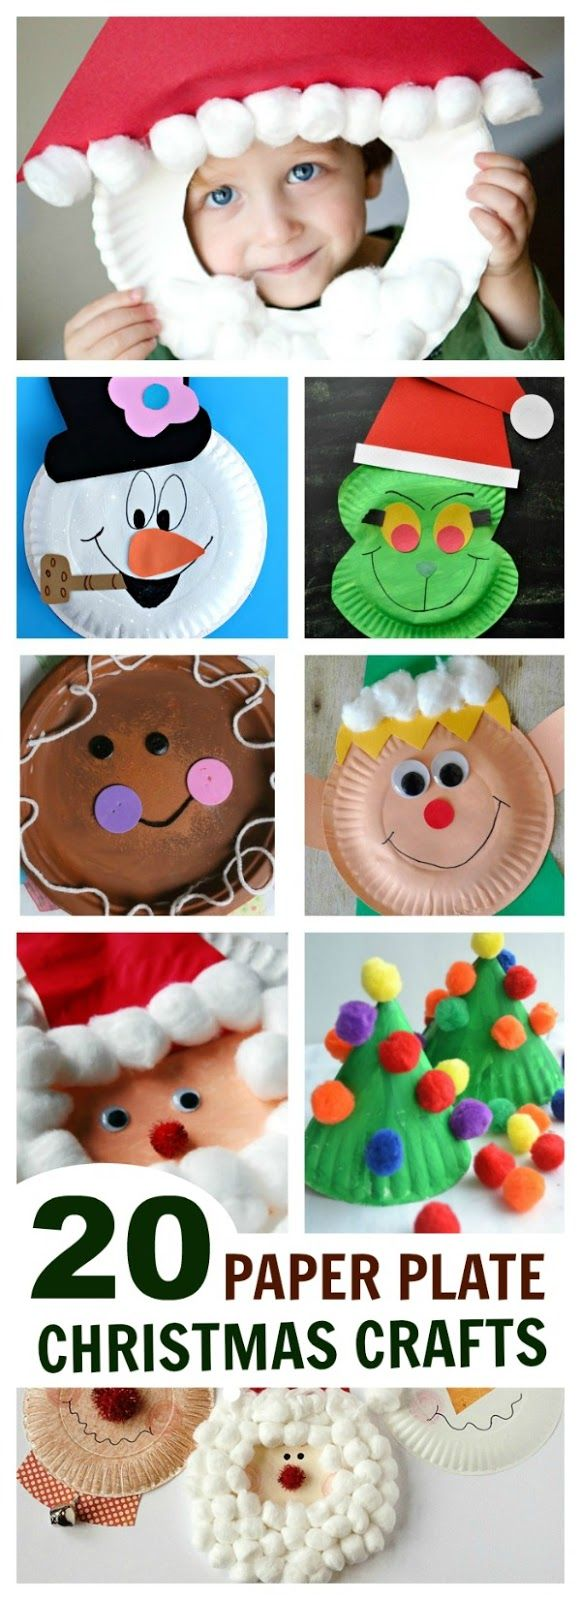 17 best ideas about kindergarten christmas crafts on pinterest christmas crafts for kids kids. Black Bedroom Furniture Sets. Home Design Ideas